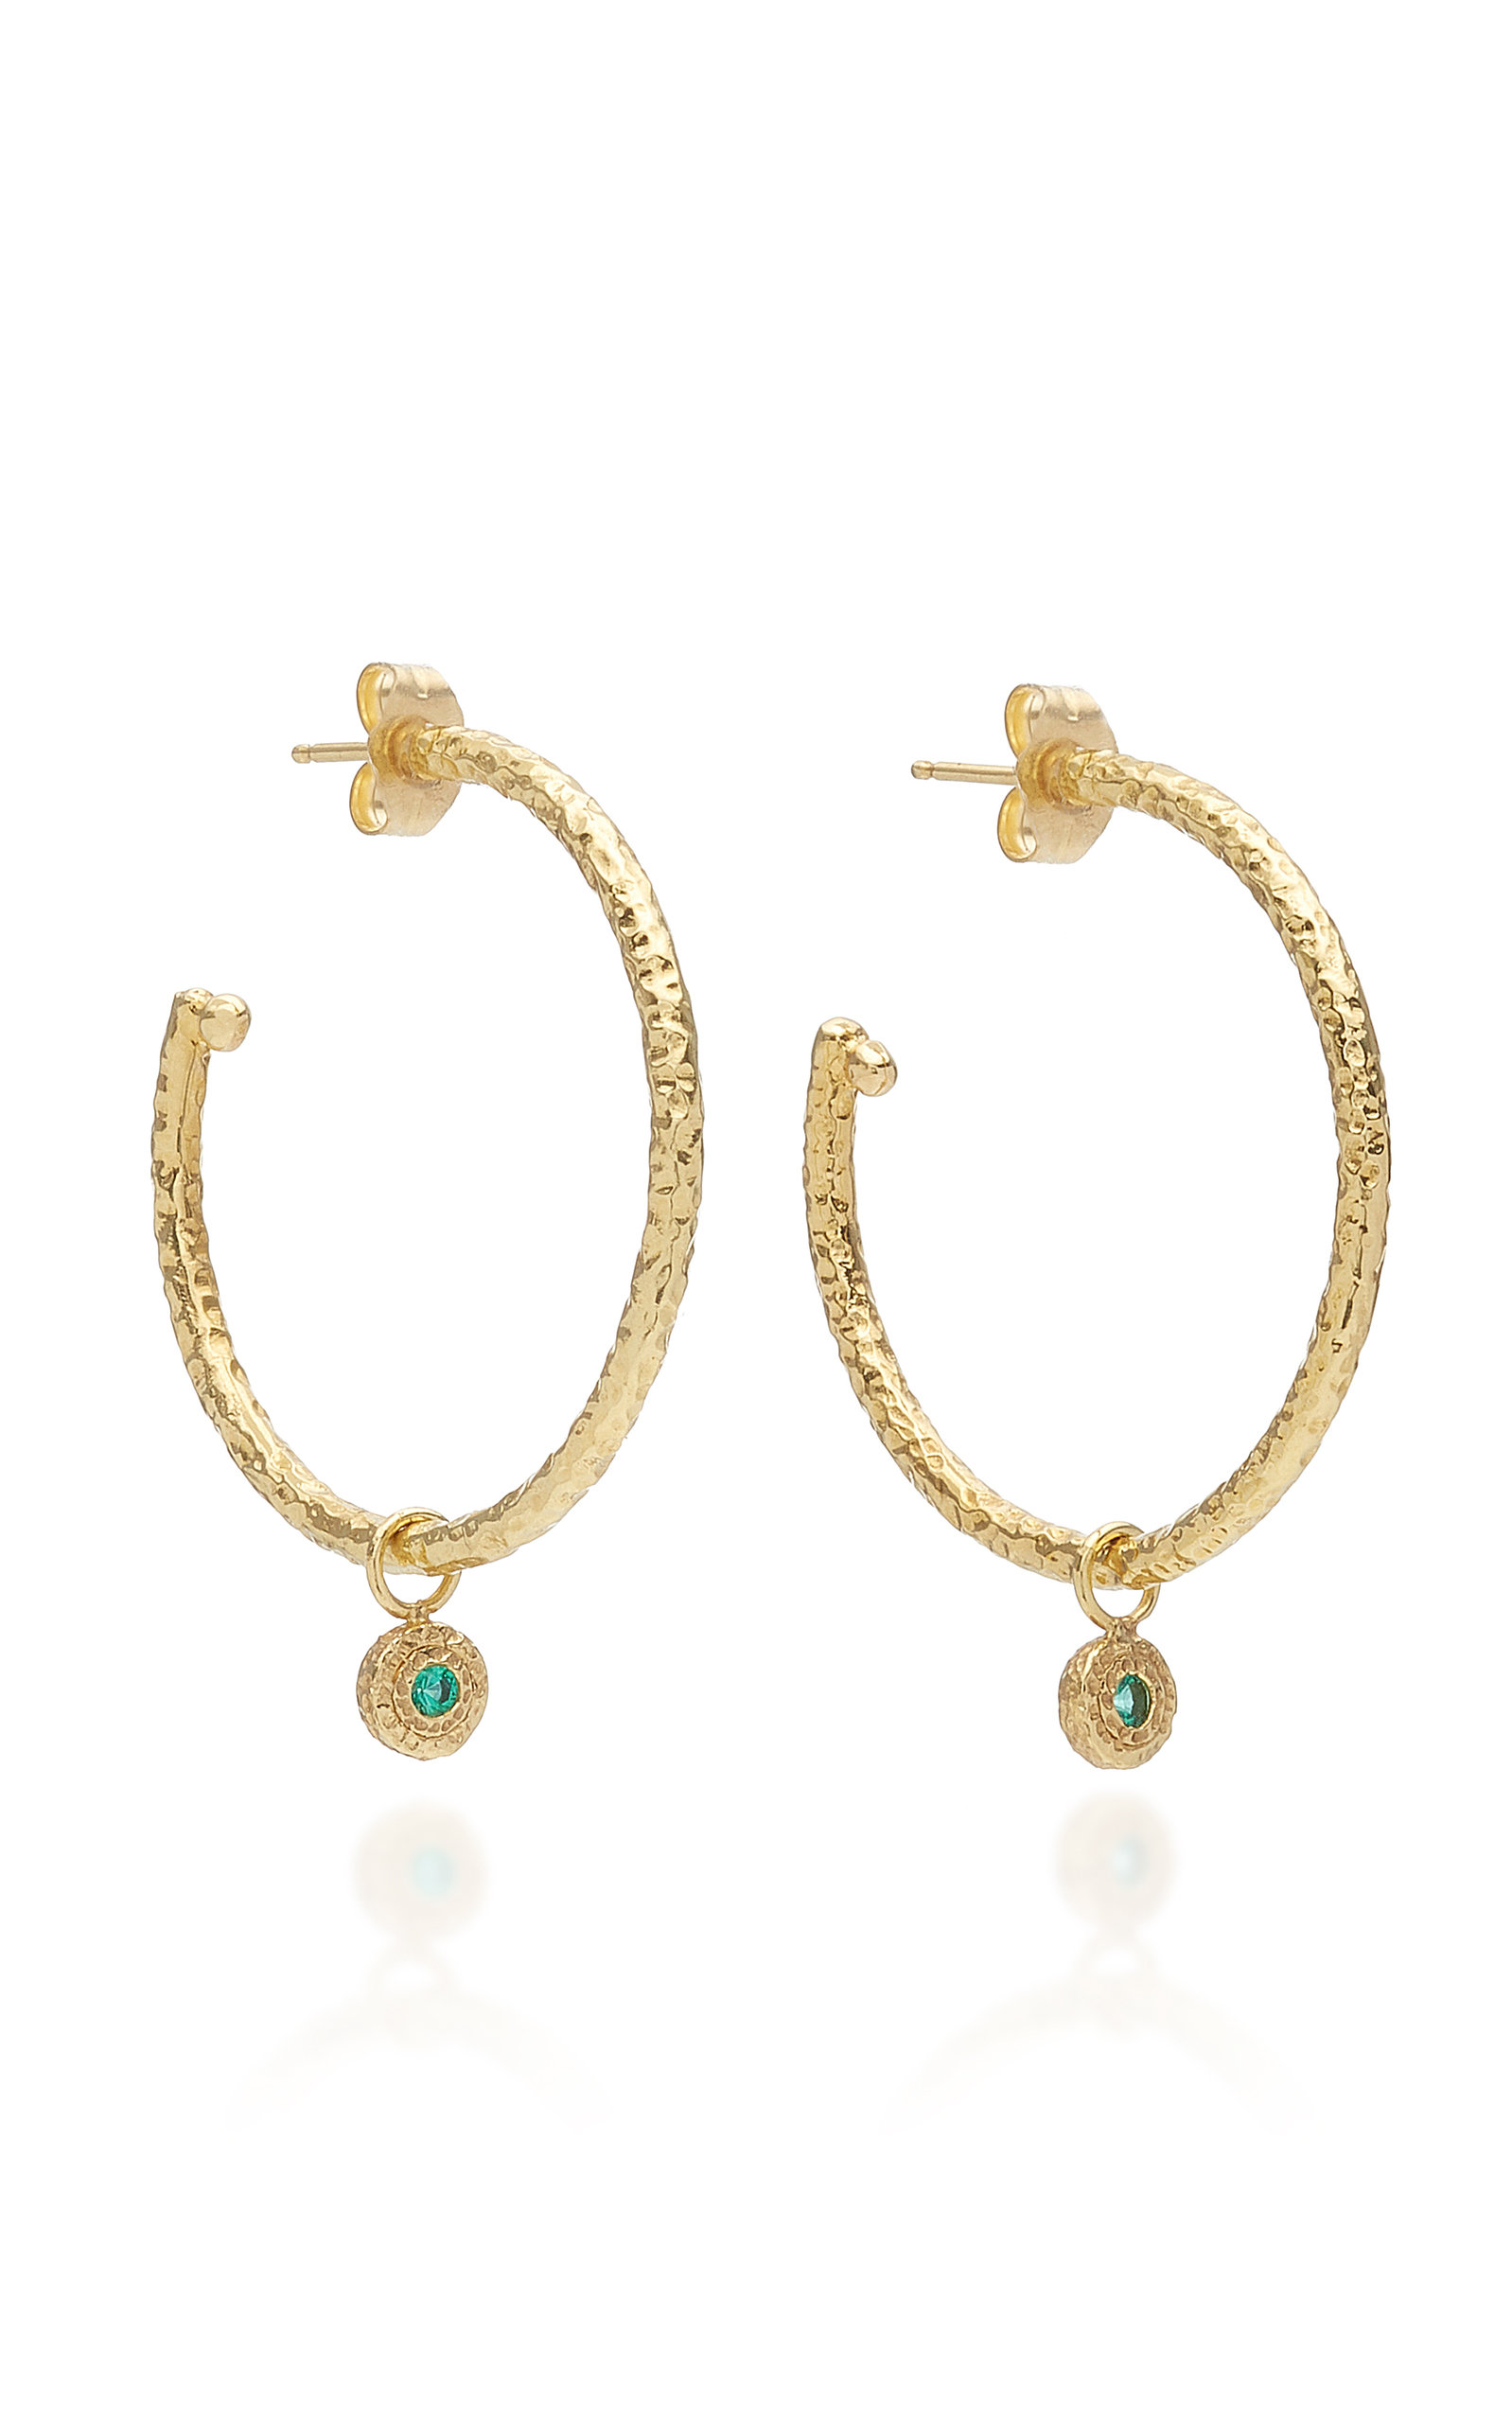 OCTAVIA ELIZABETH NESTING GEM EMERALD AND 18K GOLD HOOP EARRINGS